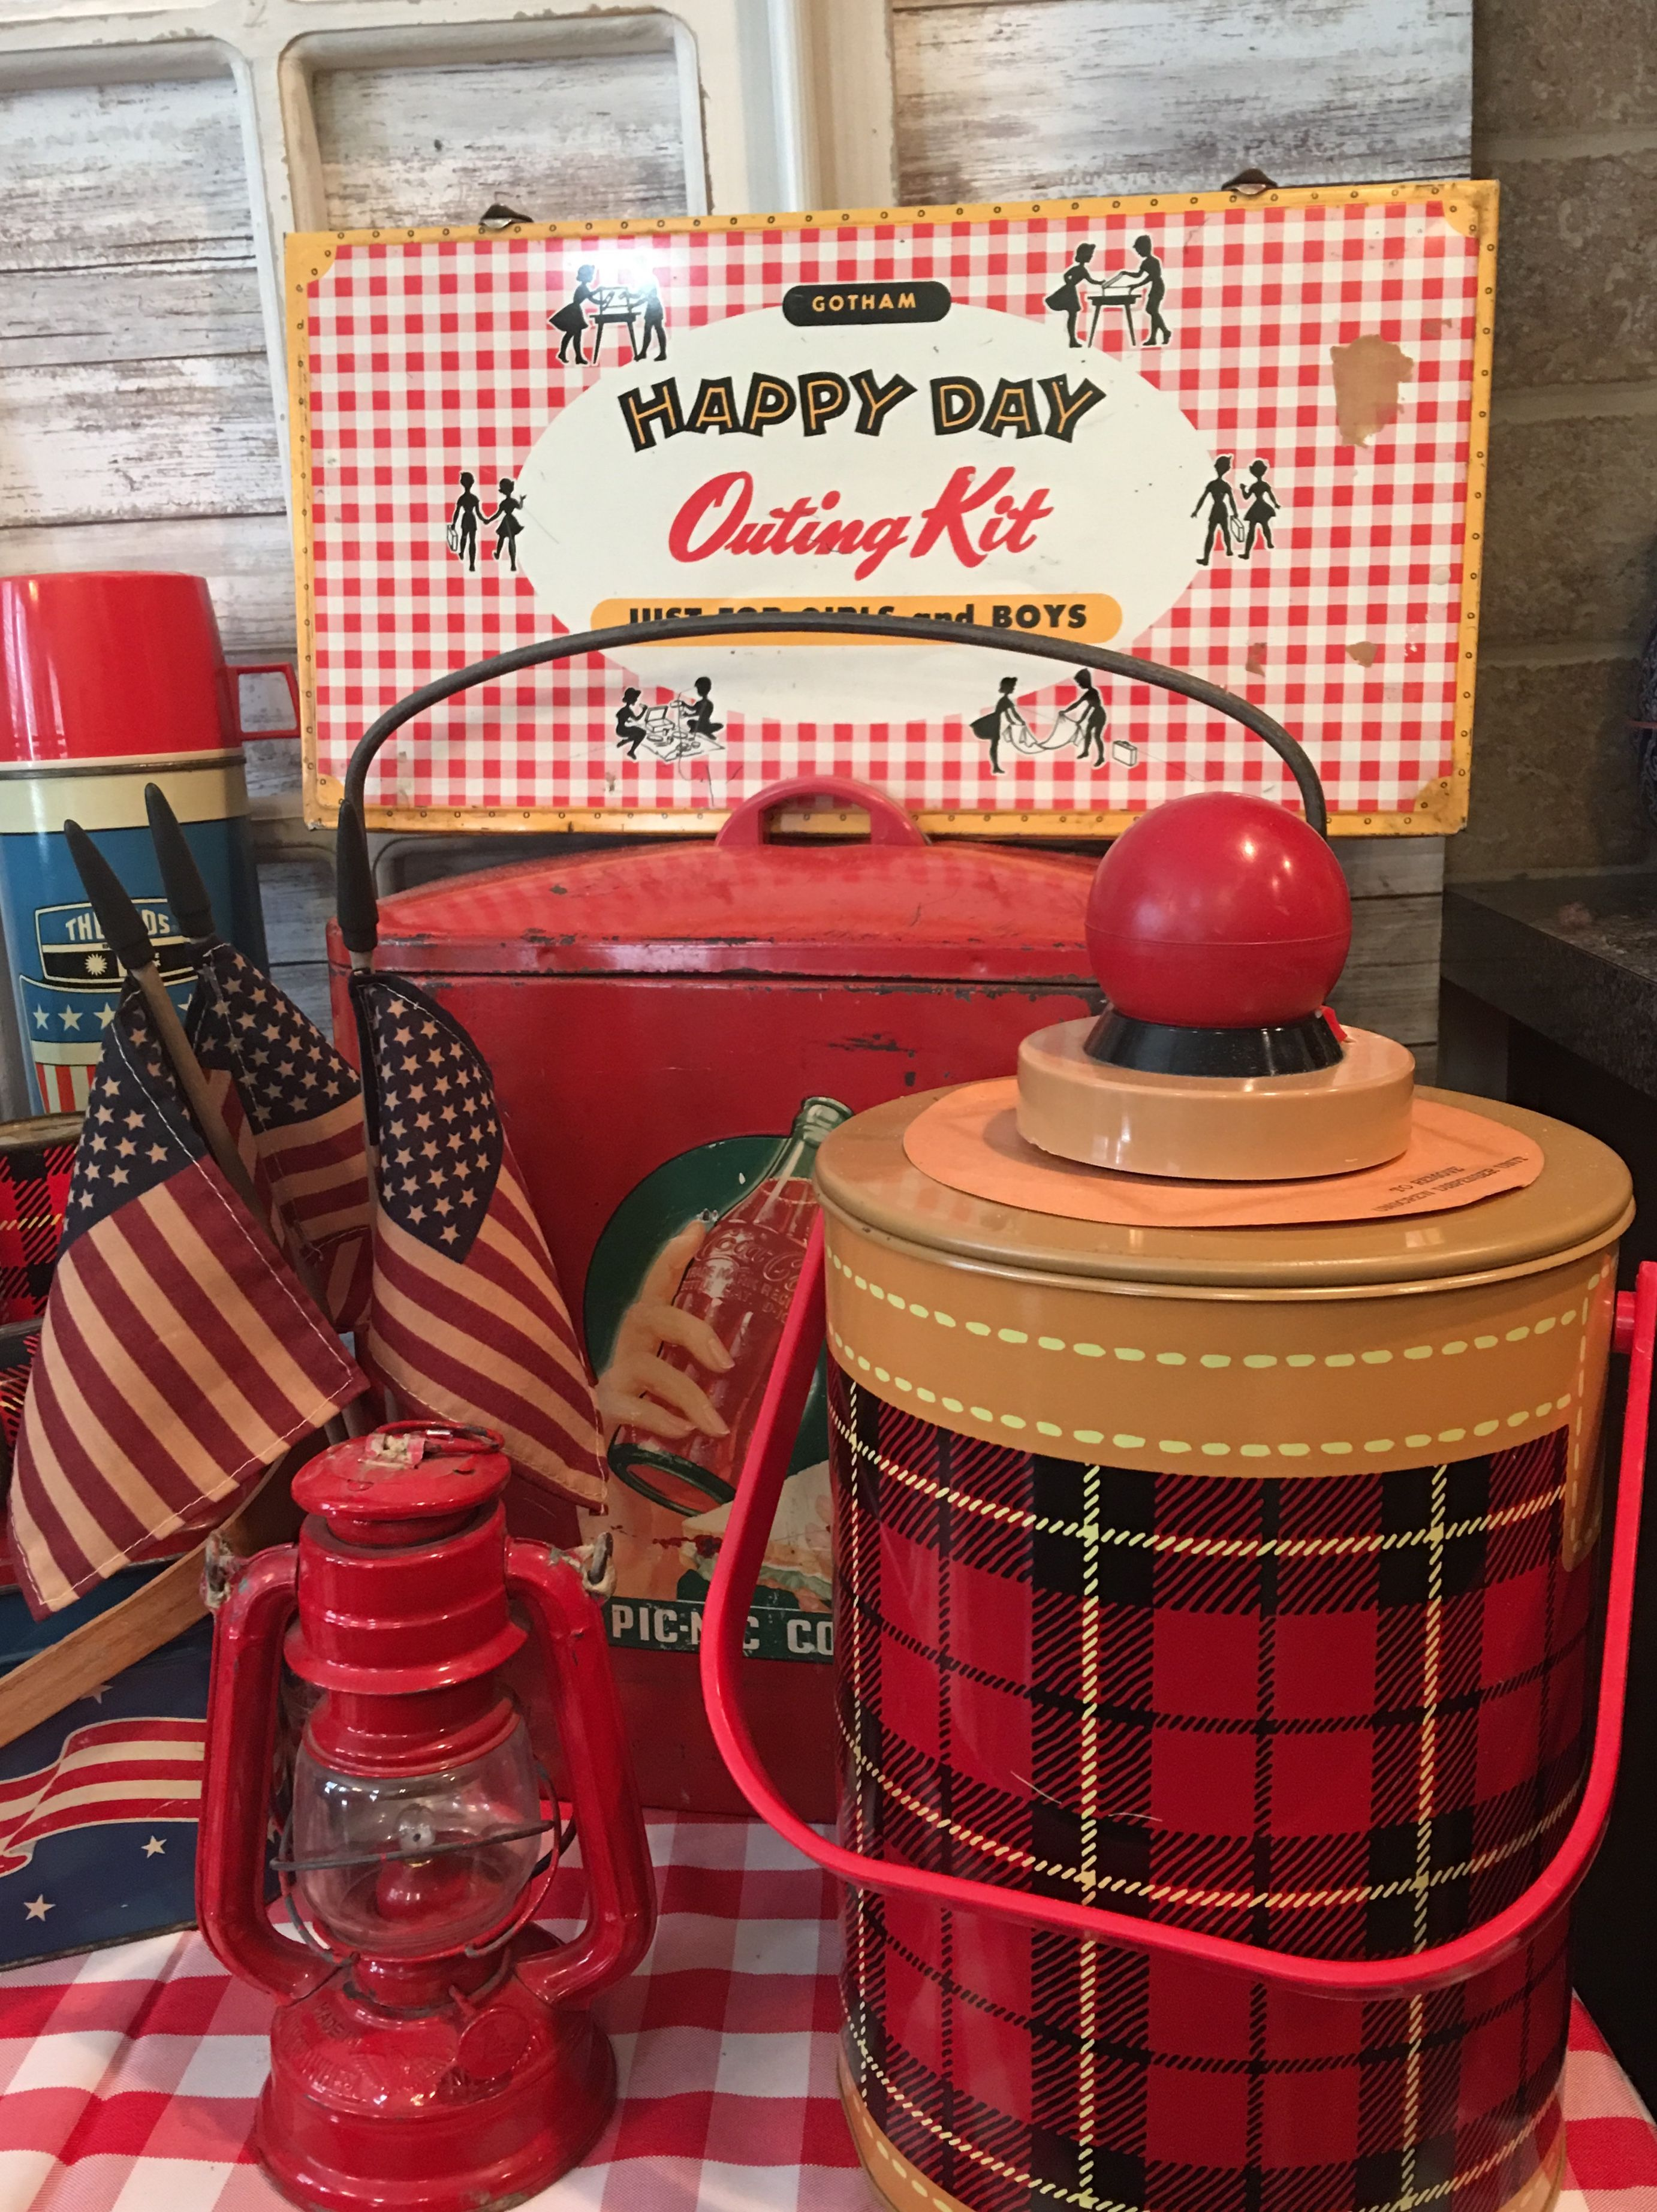 Vintage Tartan Plaid Thermos, 1940S Coca Cola Ice Chest And